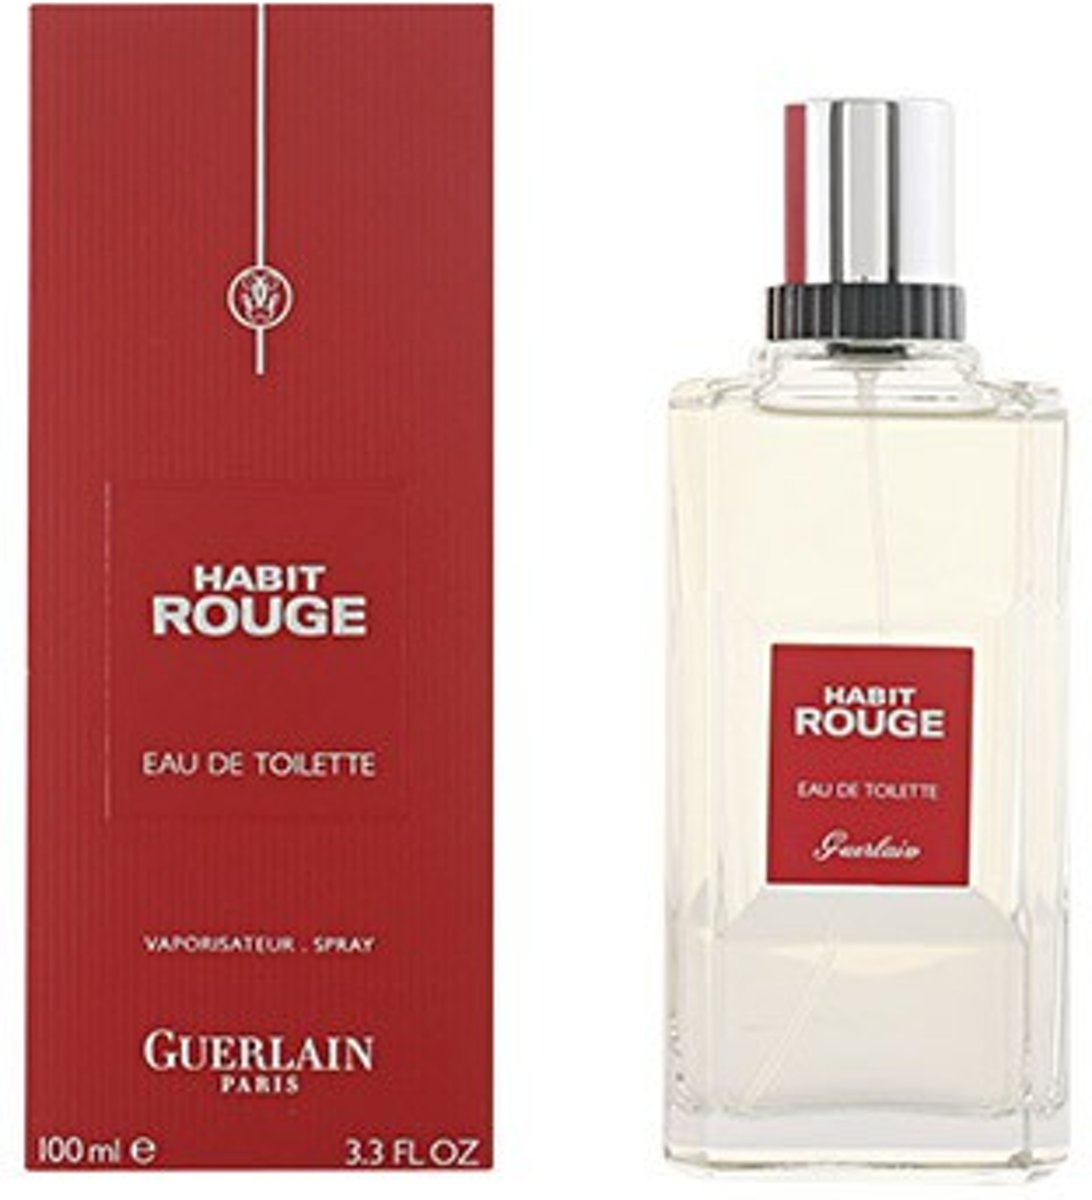 MULTI BUNDEL 2 stuks HABIT ROUGE Eau de Toilette Spray 100 ml